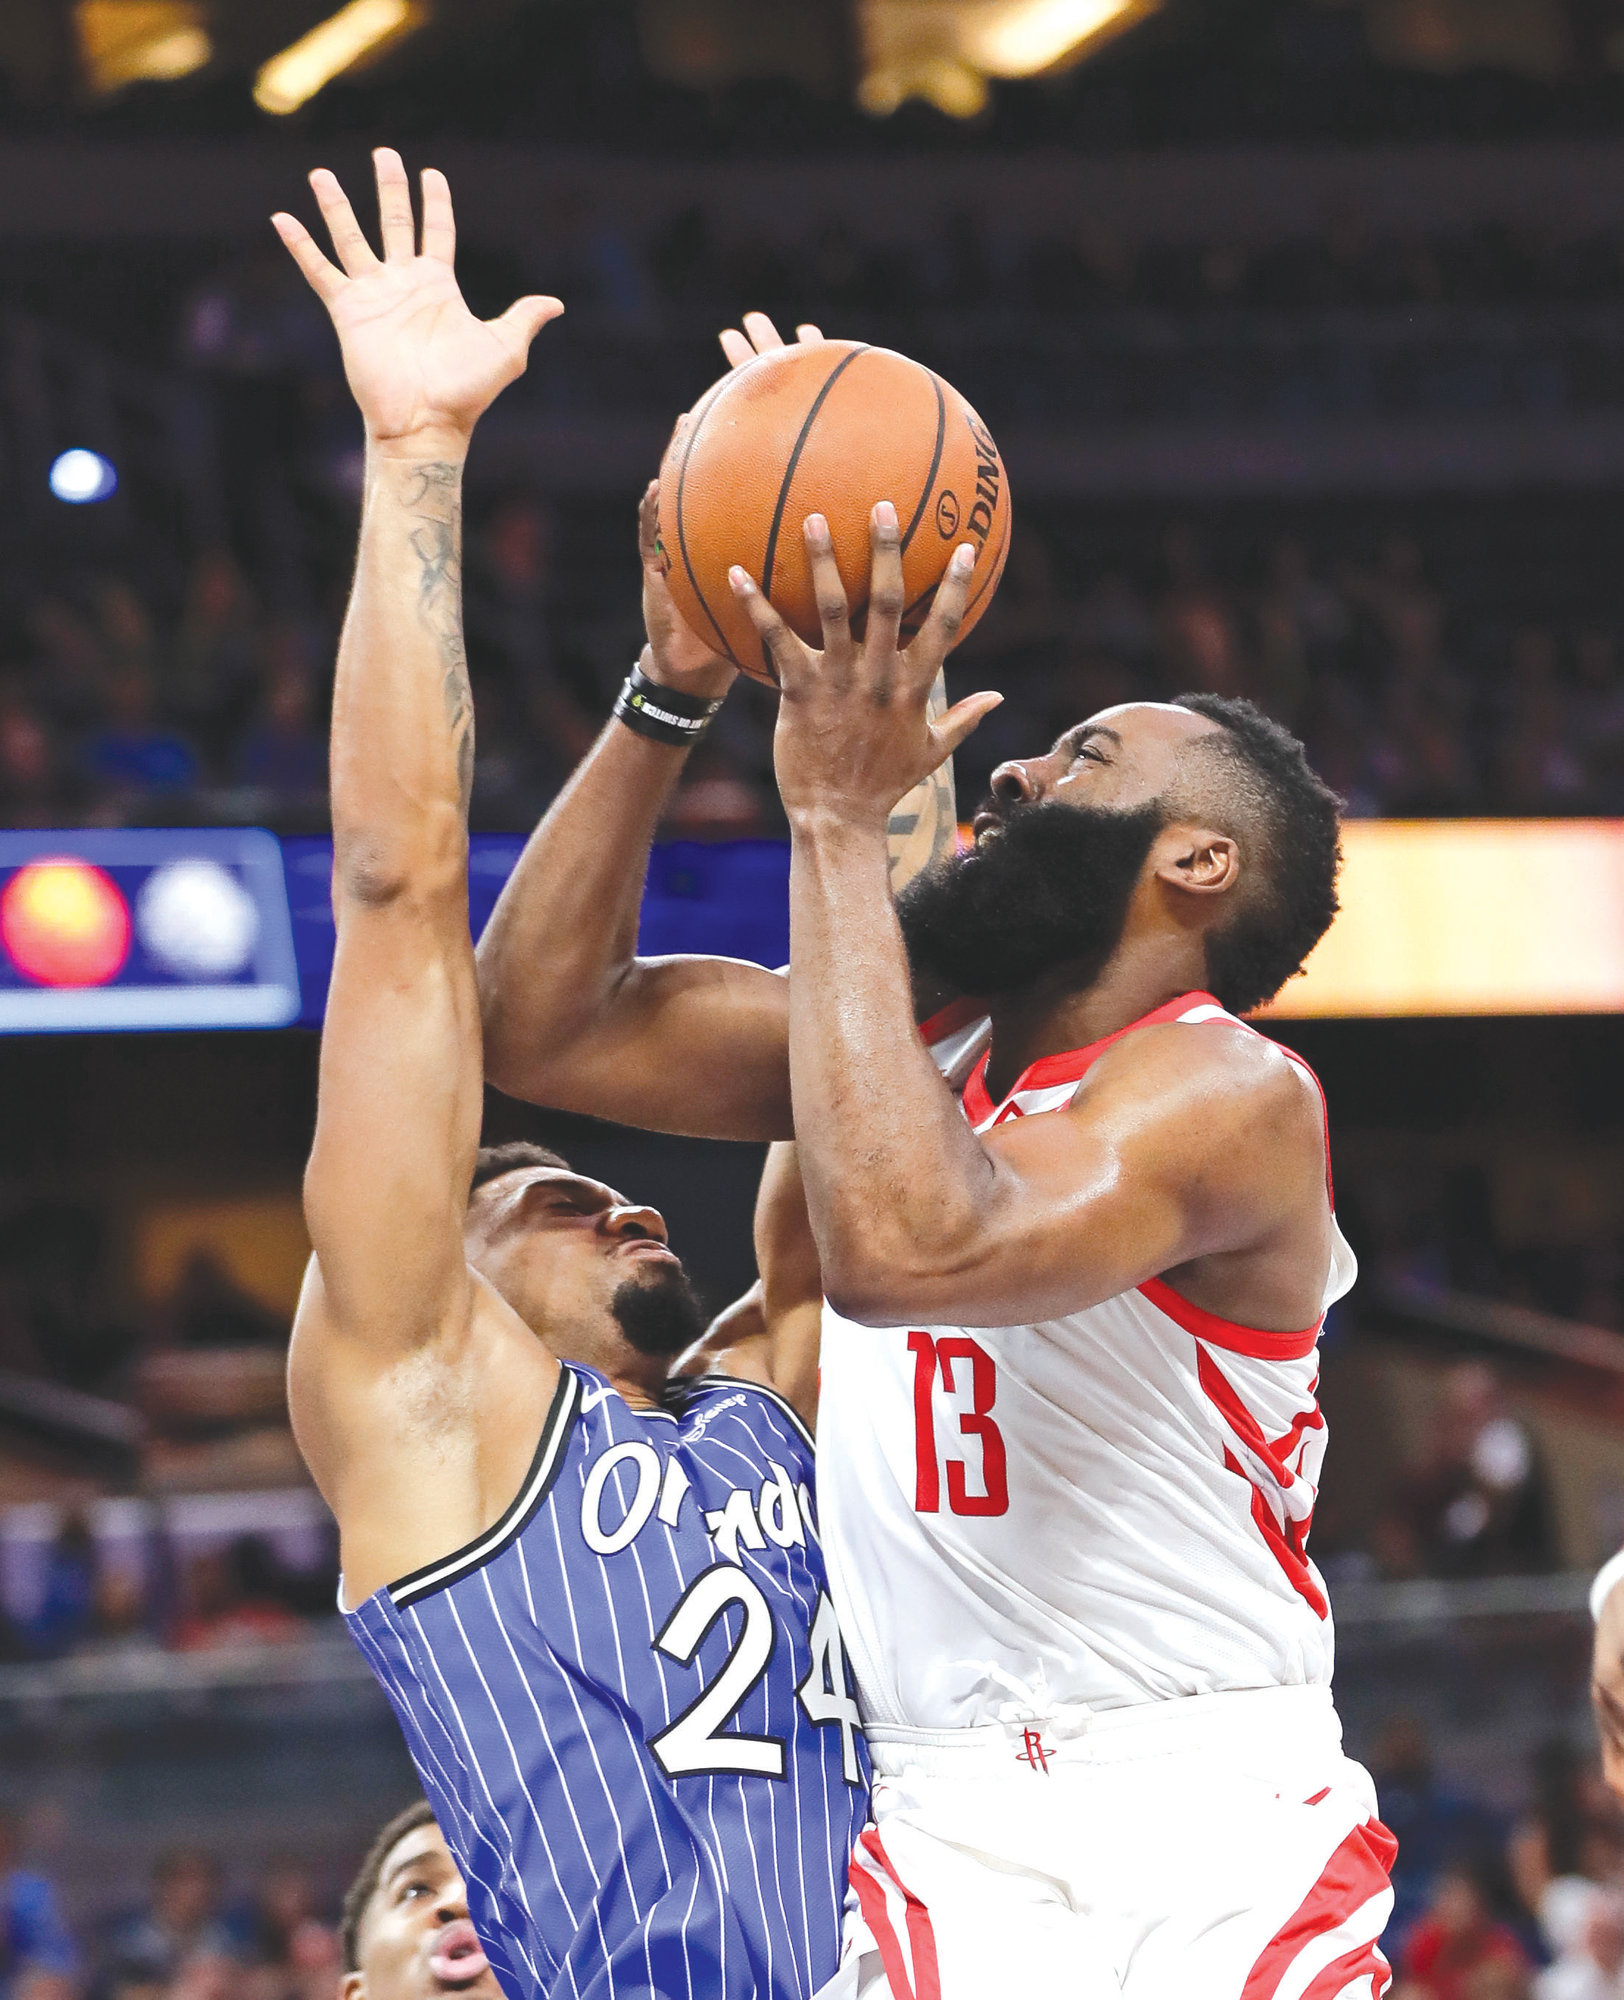 James Harden Records 2019: Sweet, Unsweet 16 For Harden On A Wild Night In Orlando